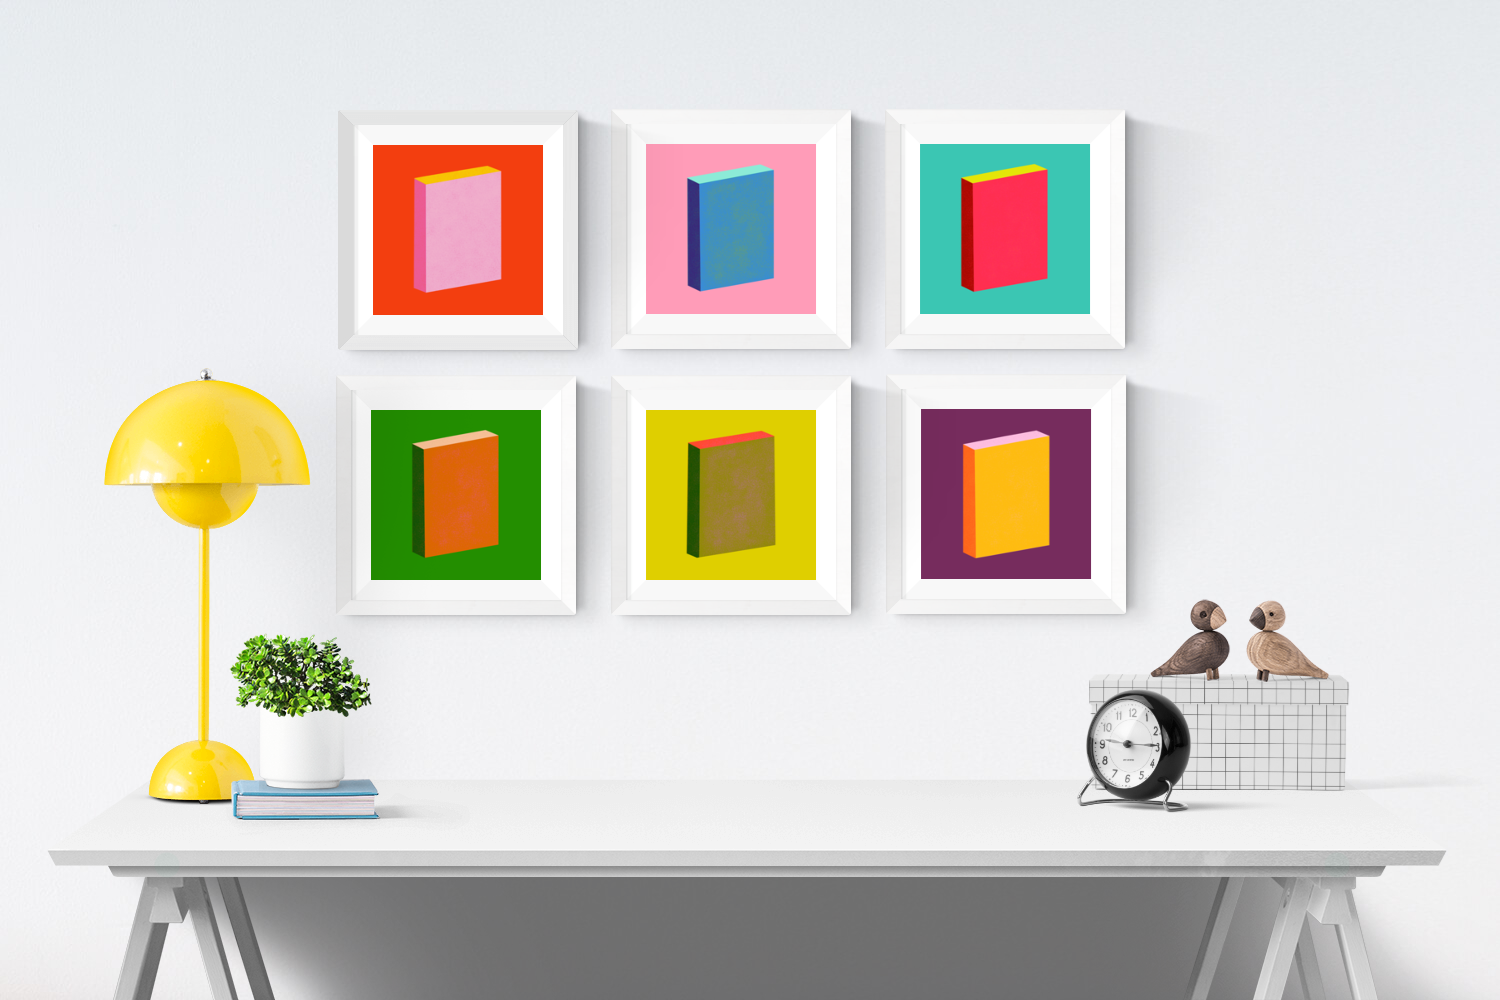 Color Books Series.  Top Row Left to Right:  Red + Pink, Blue + Pink, Turquoise + Red.  Bottom Row Left to Right:  Green + Umber, Yellow + Olive; Eggplant + Yellow.